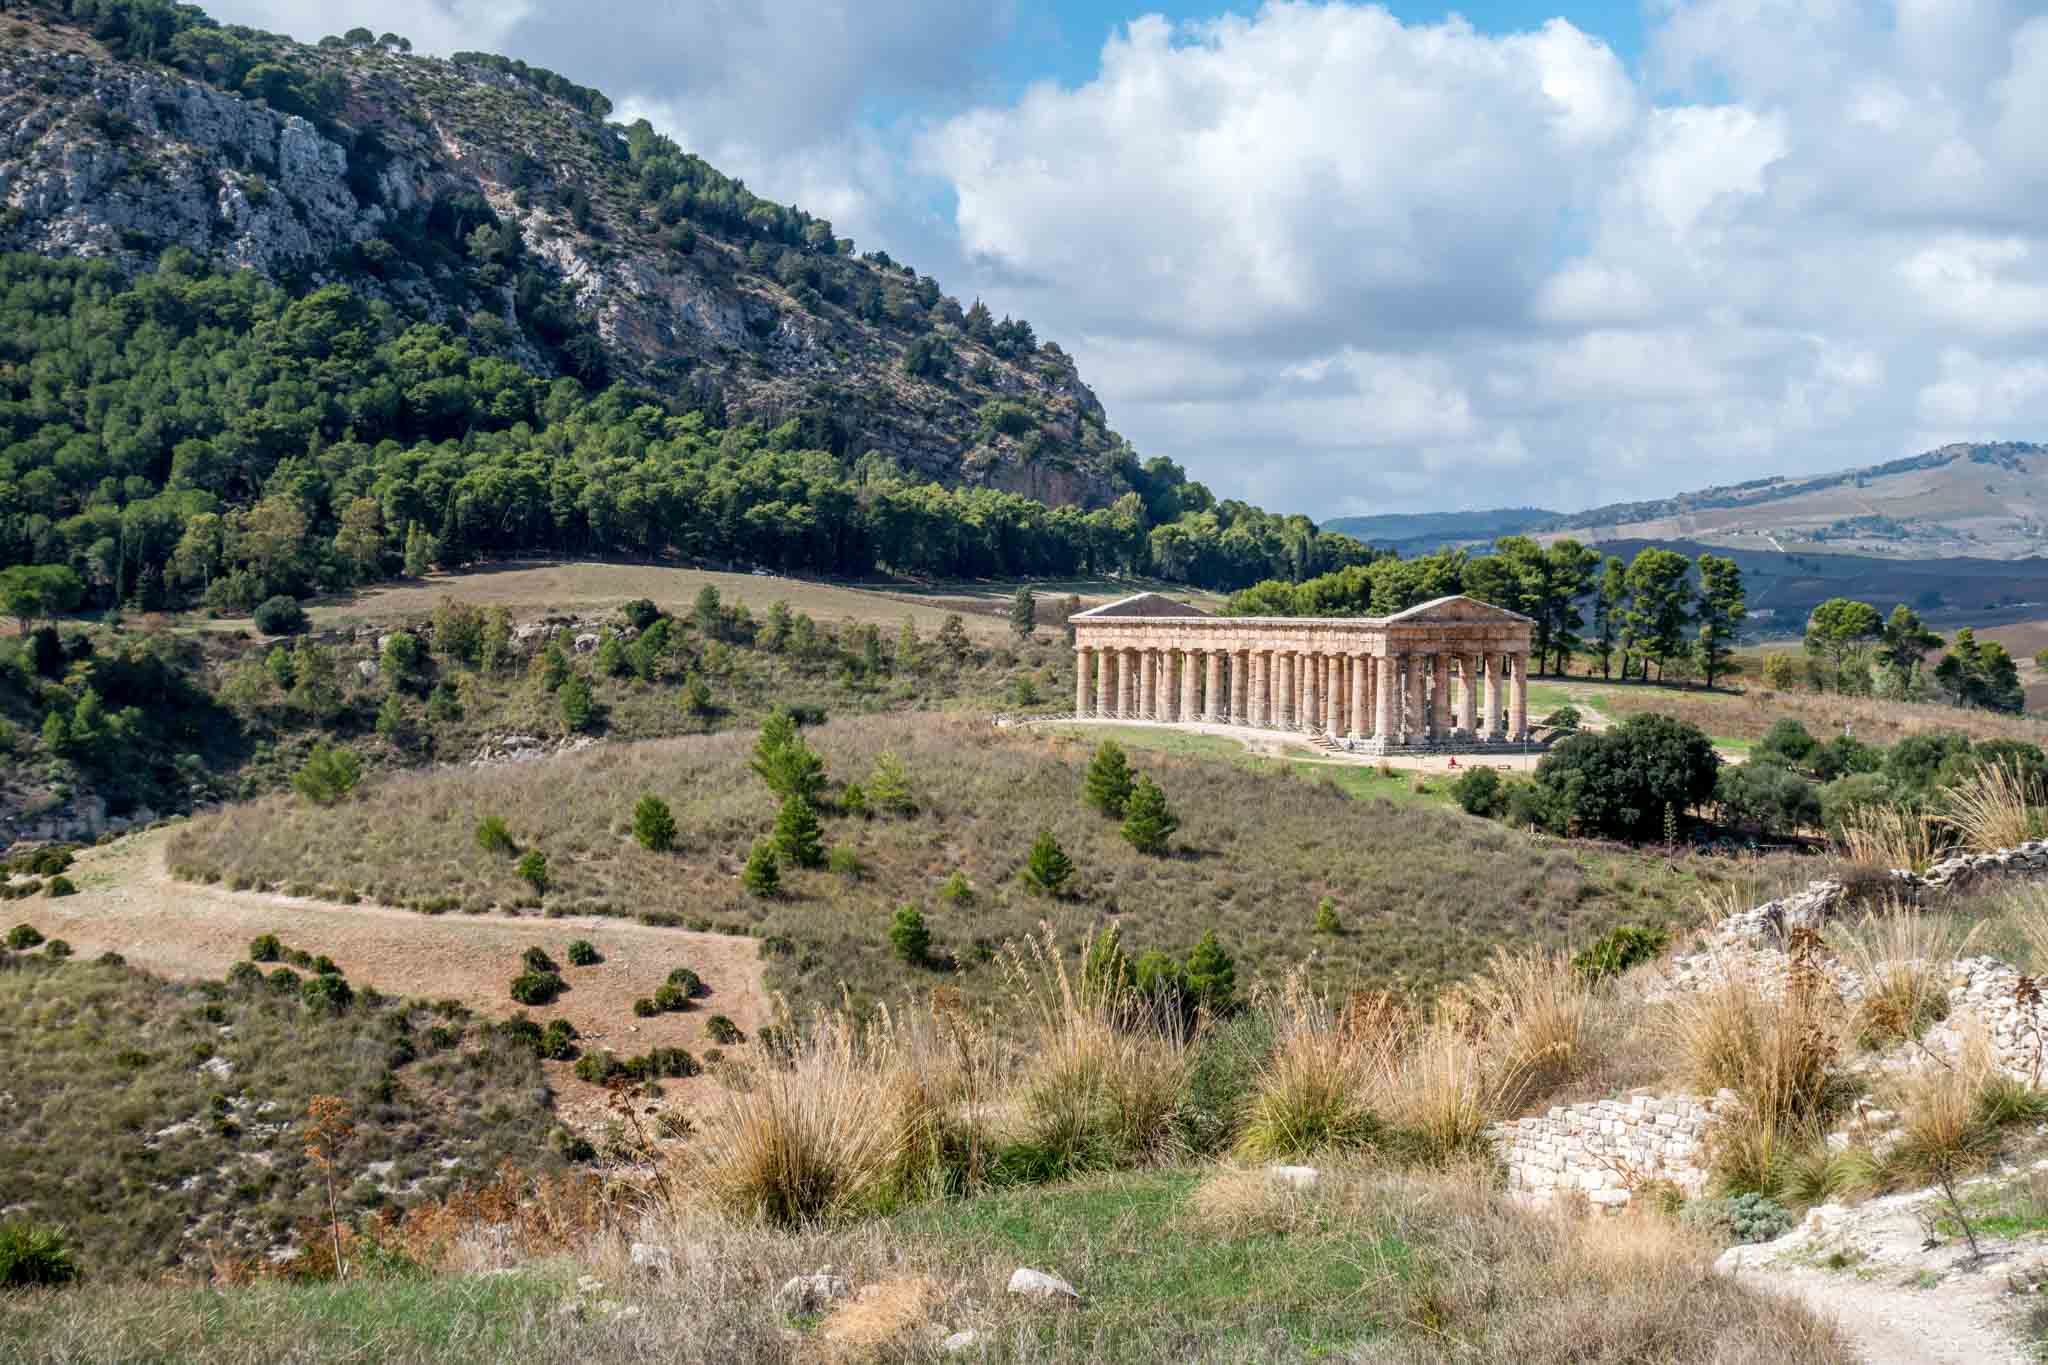 Temple of Segesta, a columned temple in a valley